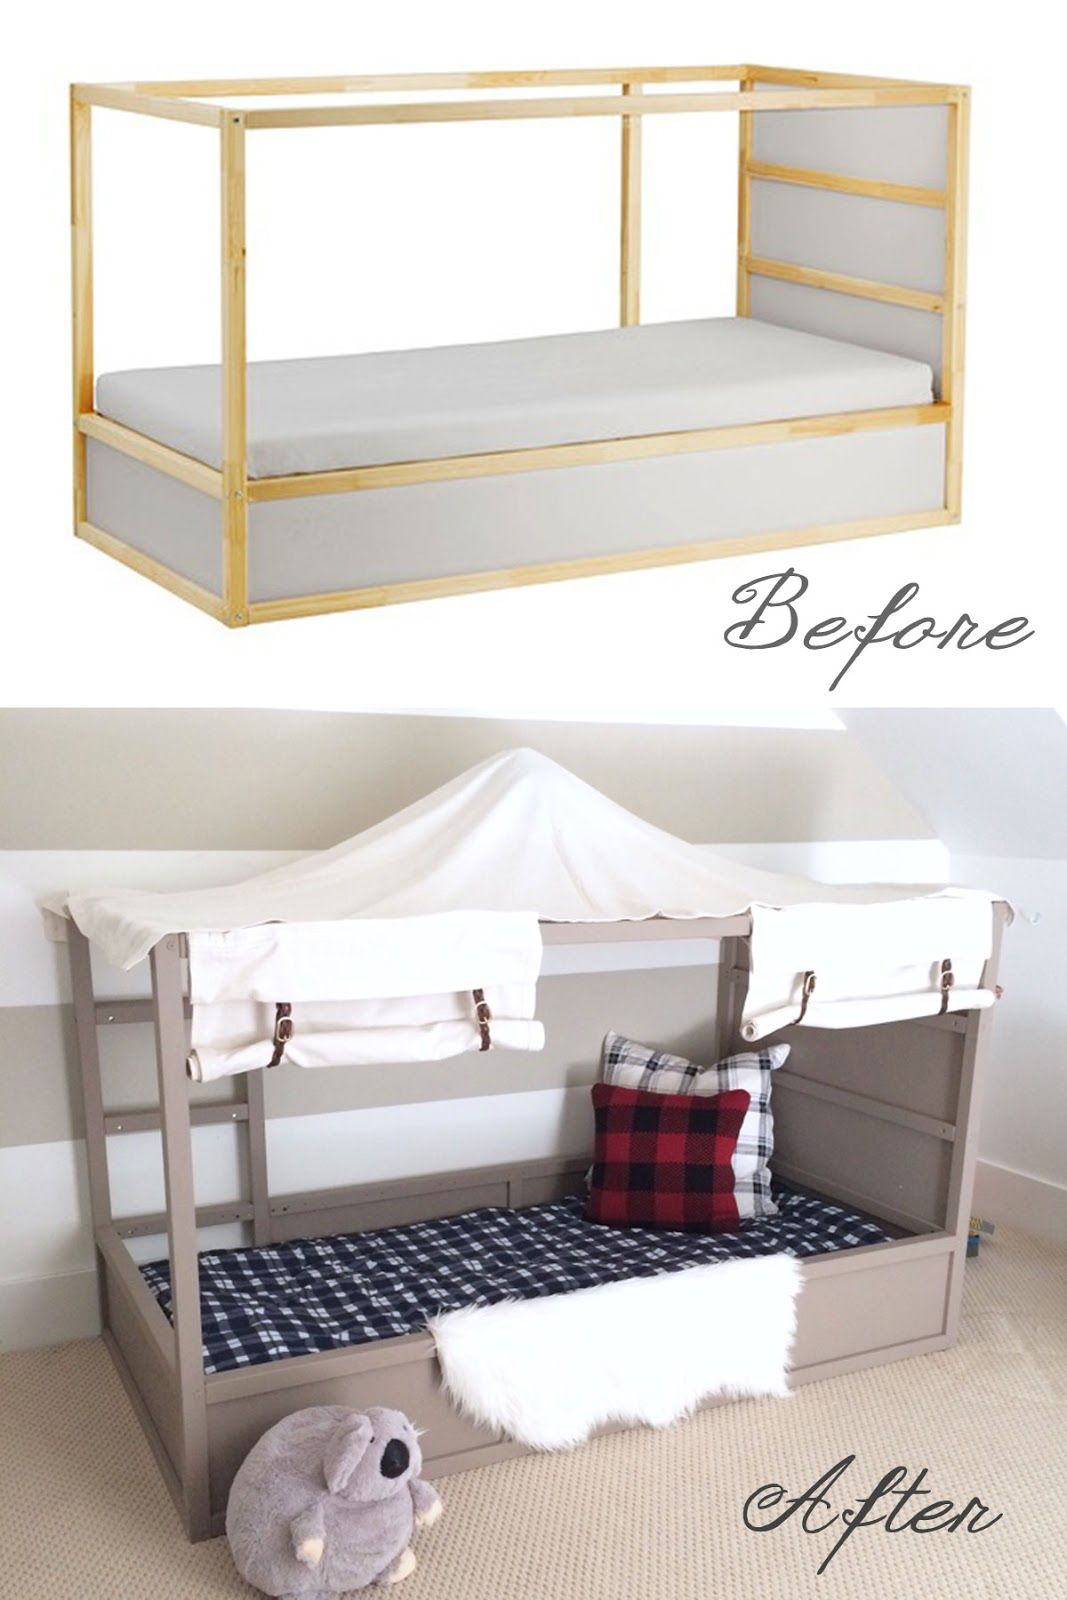 ikea kura bed hack diy boy canopy bed kid and parenting pinterest kinderzimmer hochbett. Black Bedroom Furniture Sets. Home Design Ideas